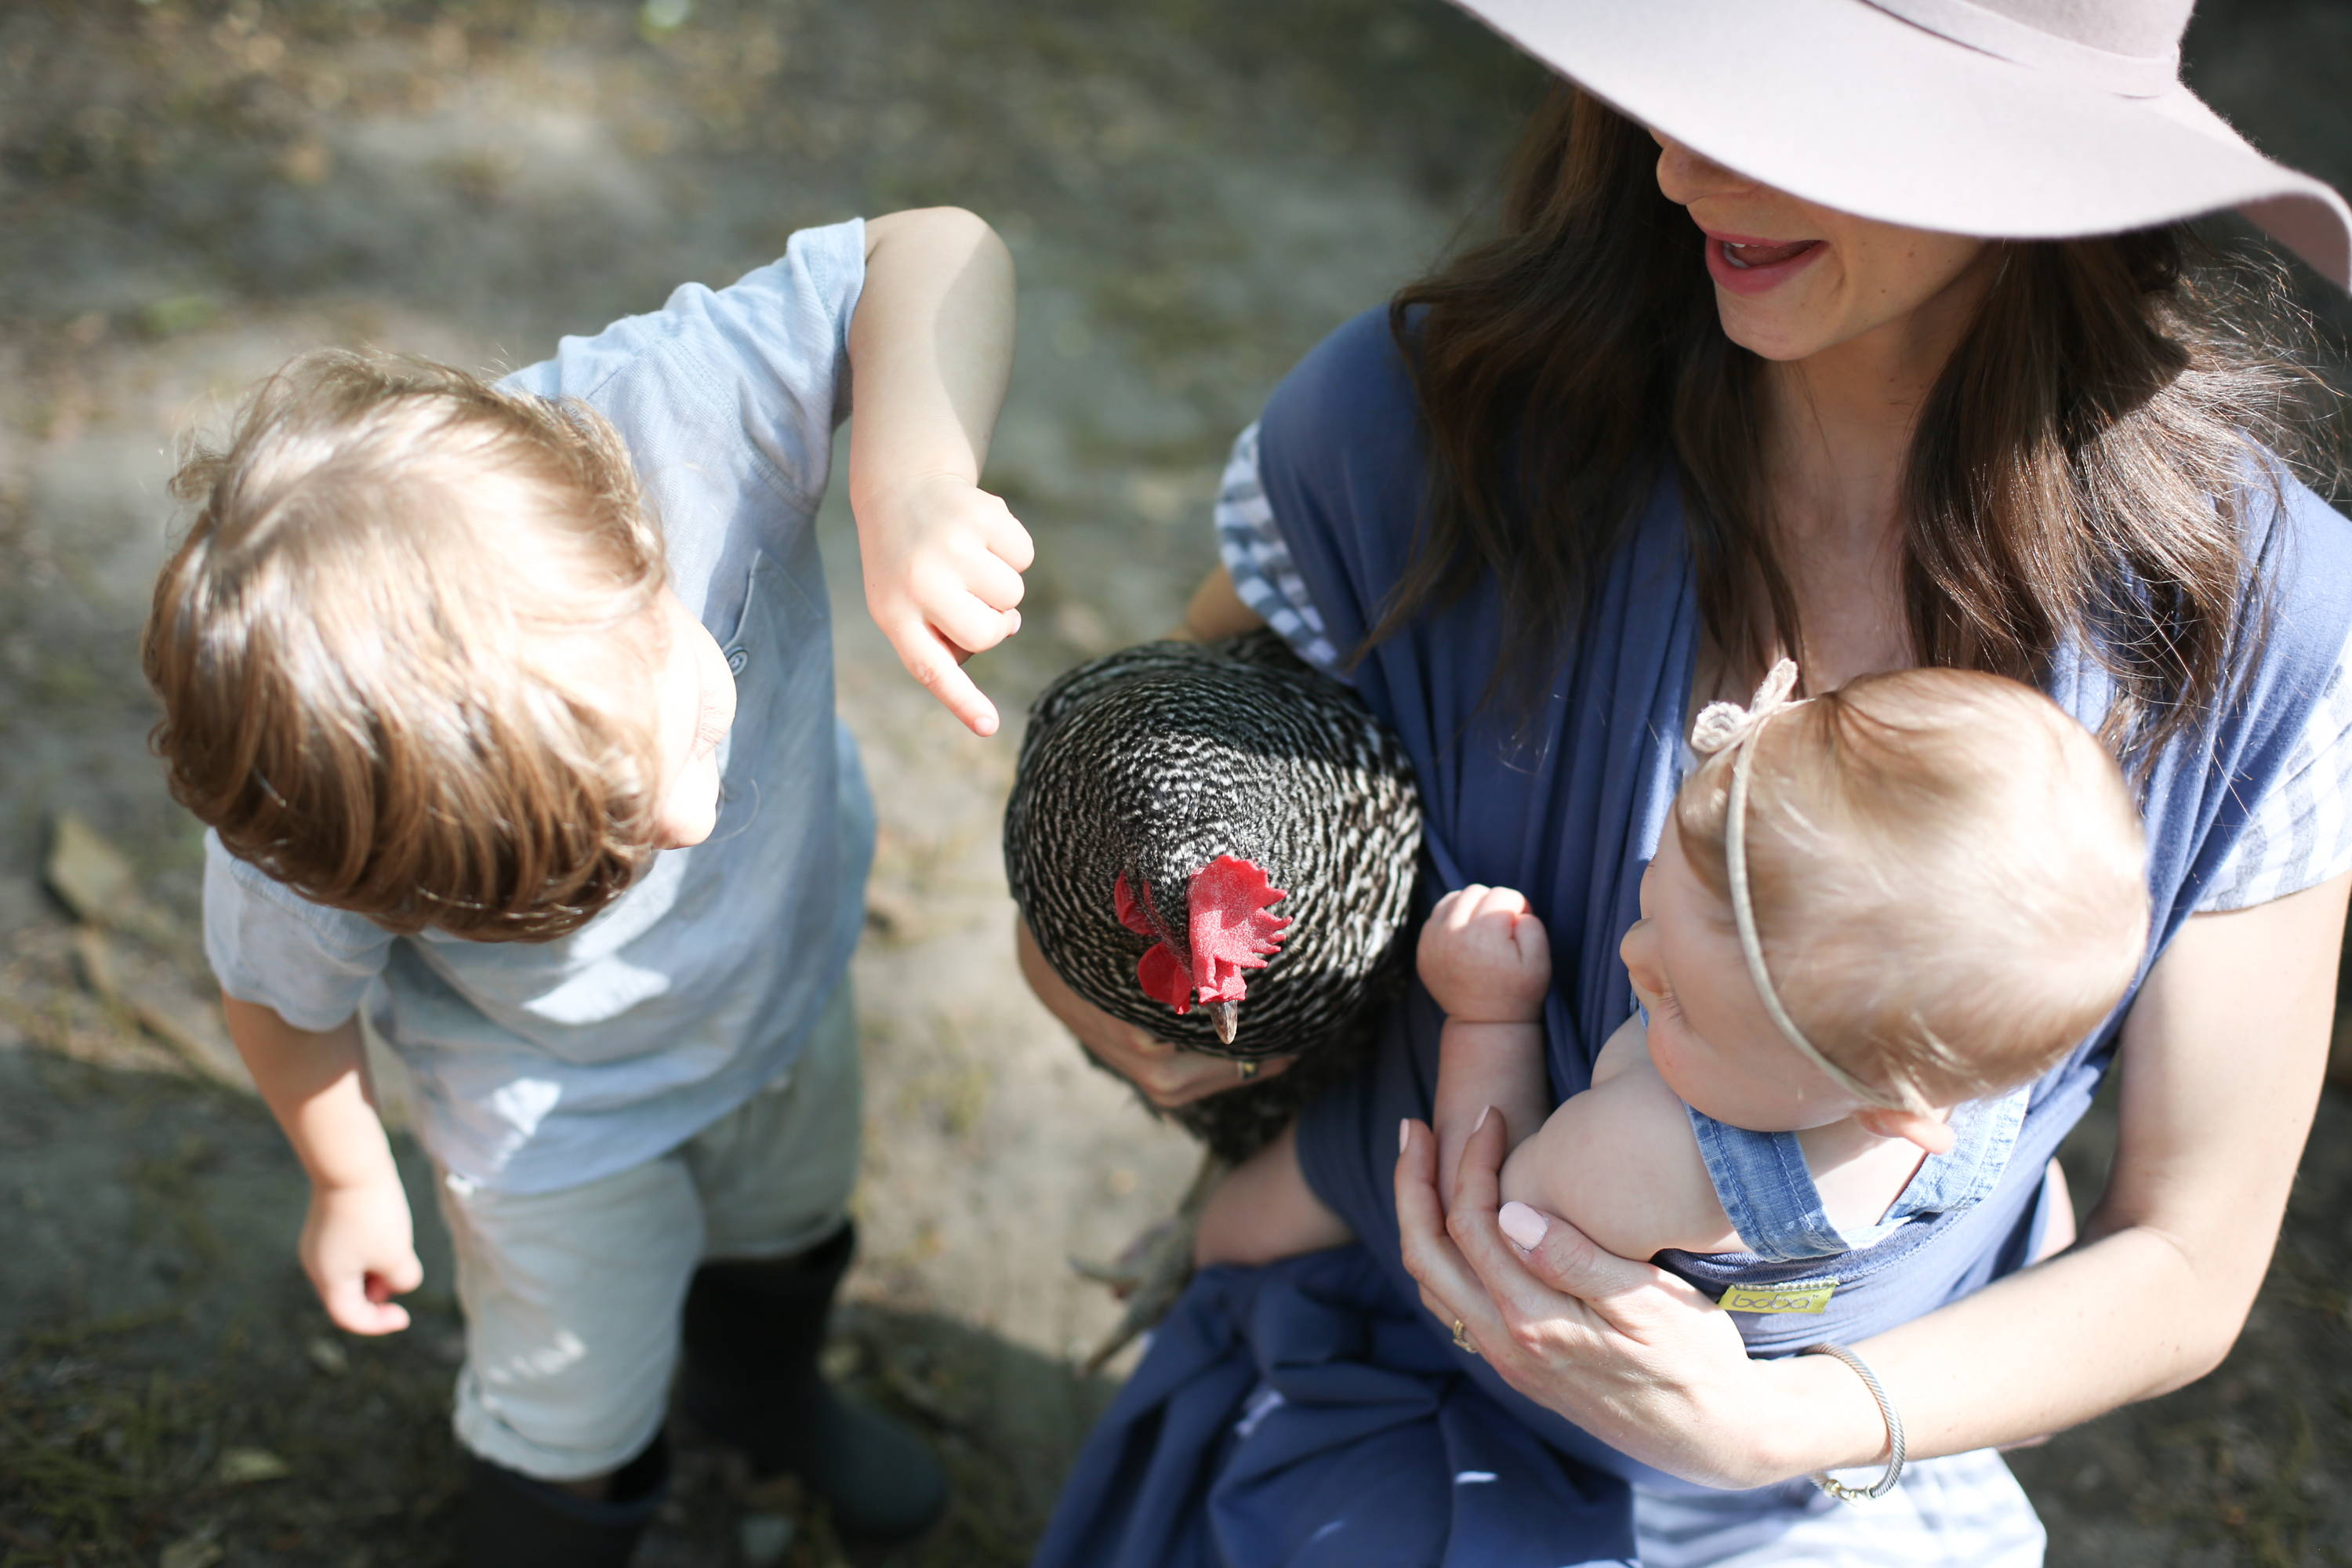 Mom having fun with a baby and toddler and their chicken at a farm